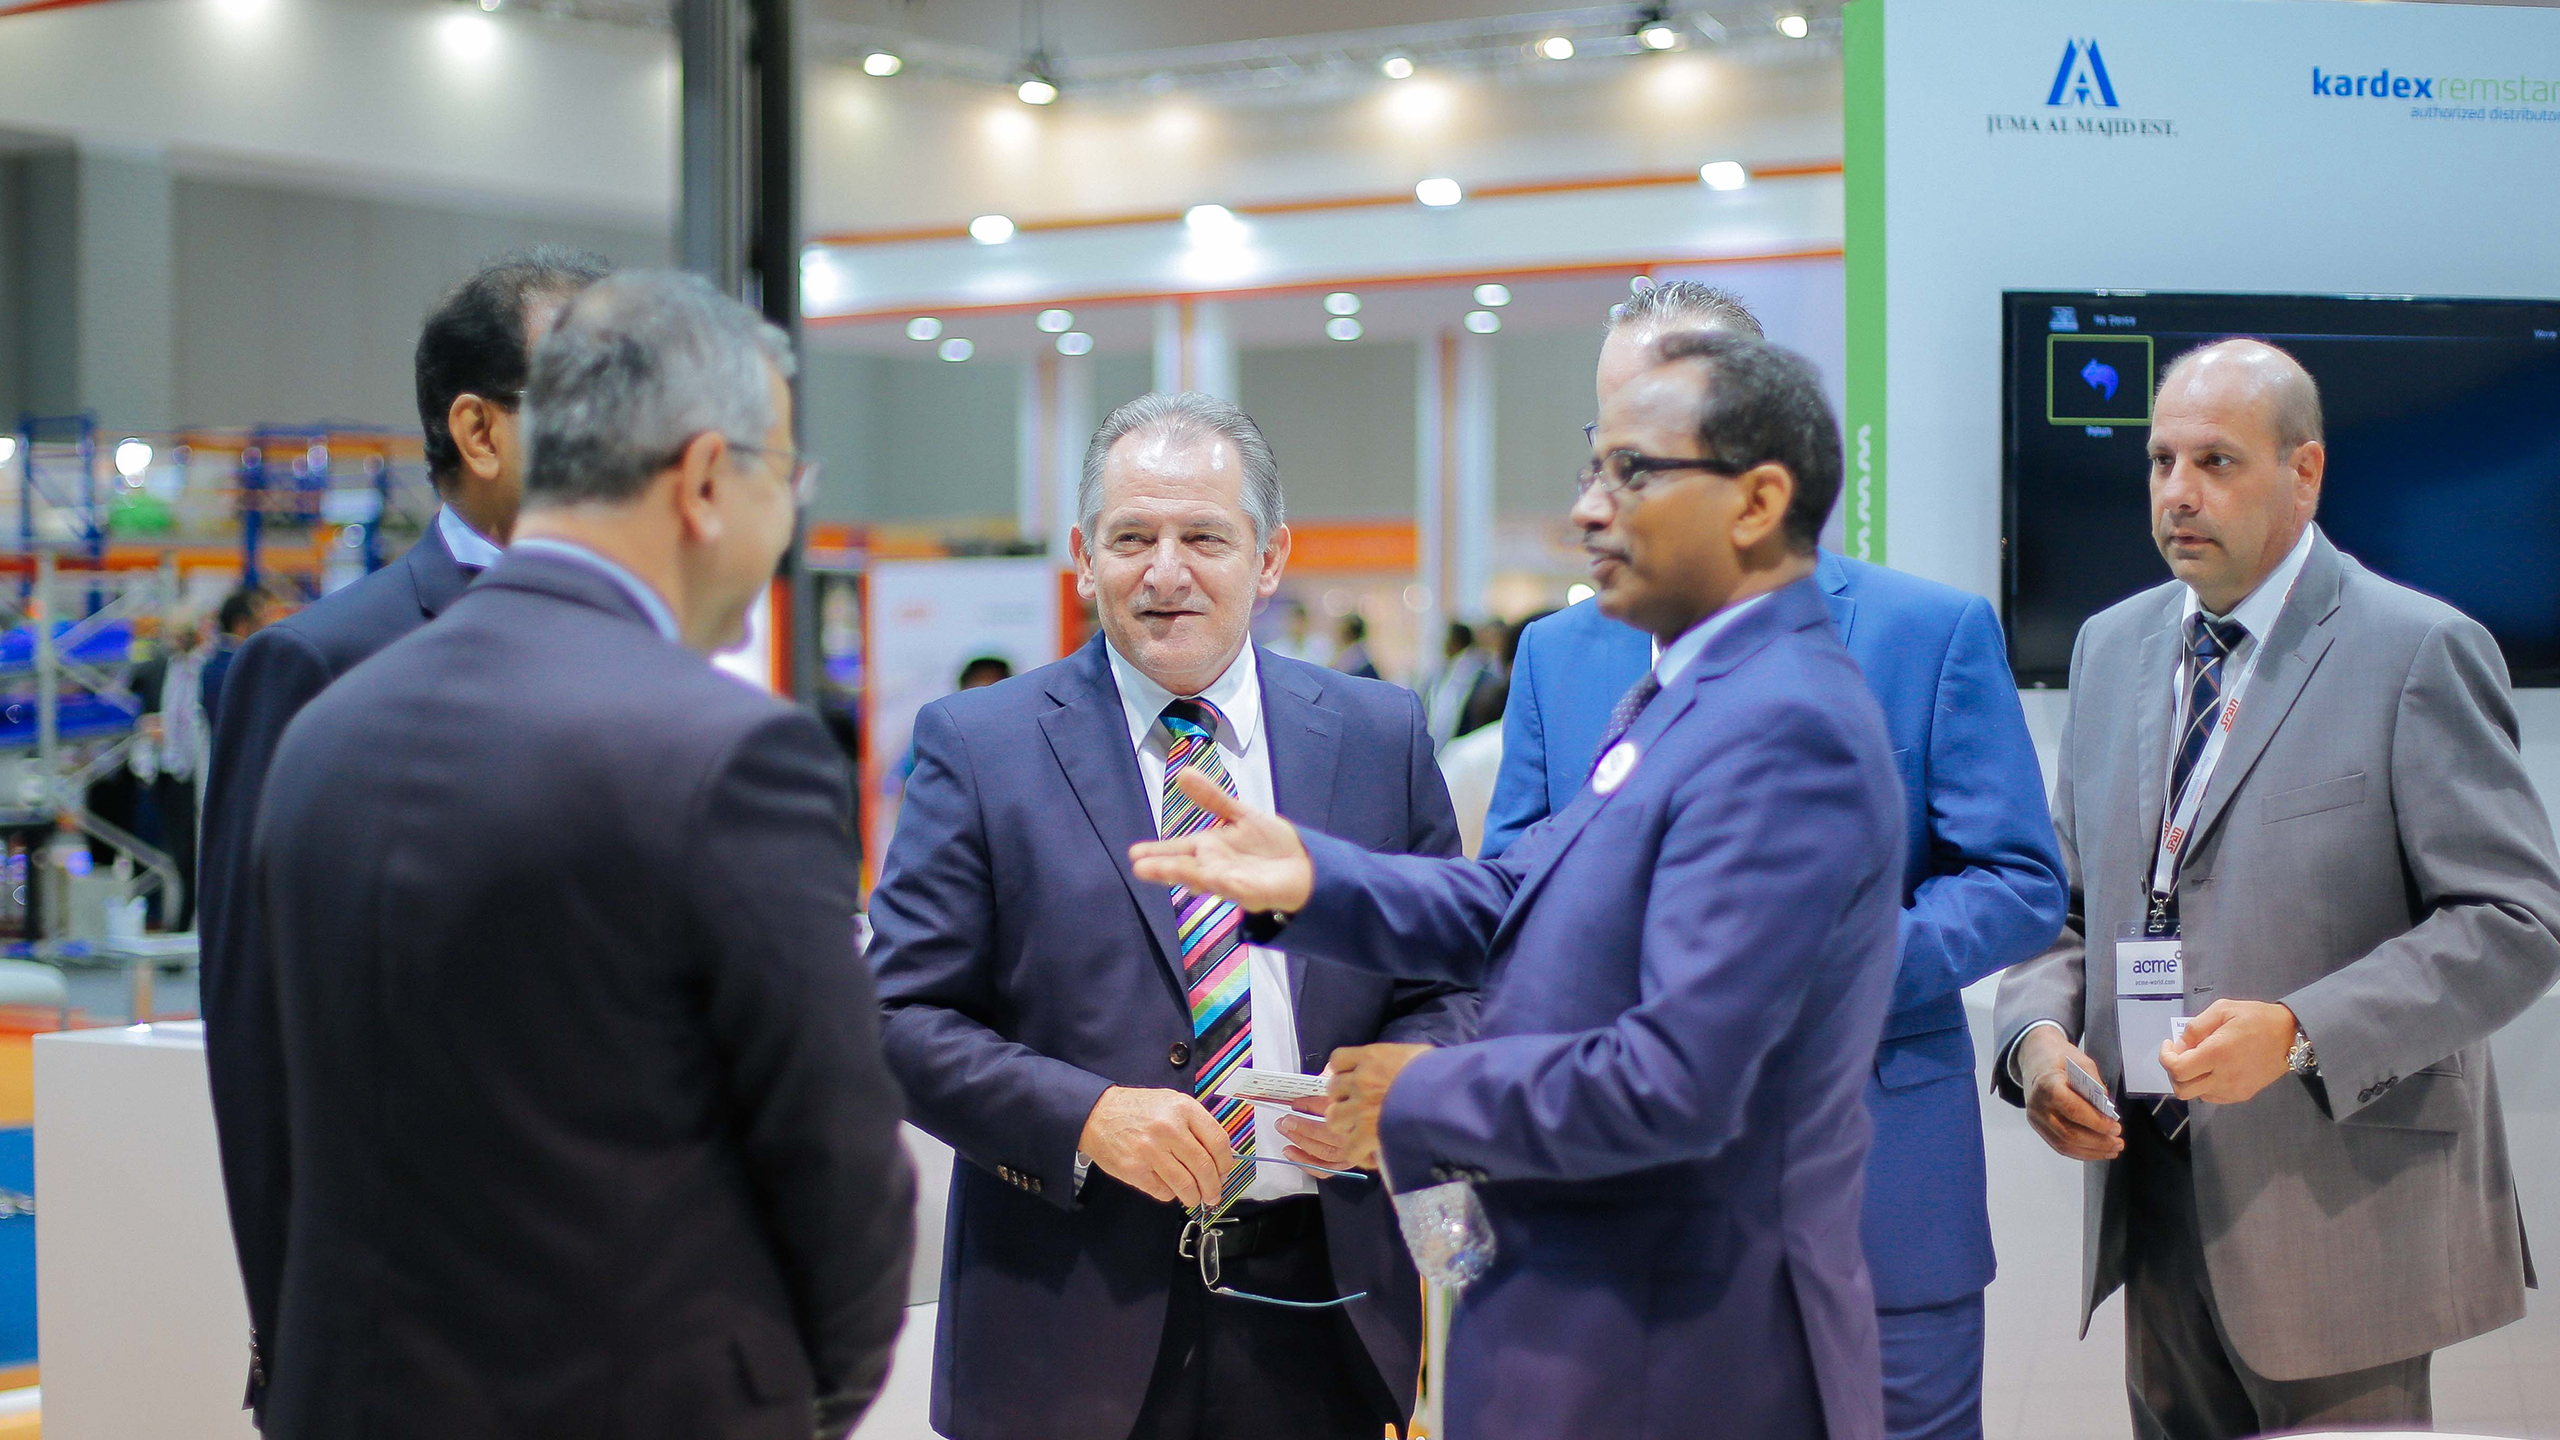 Materials Handling Middle East - Exhibition Grounds